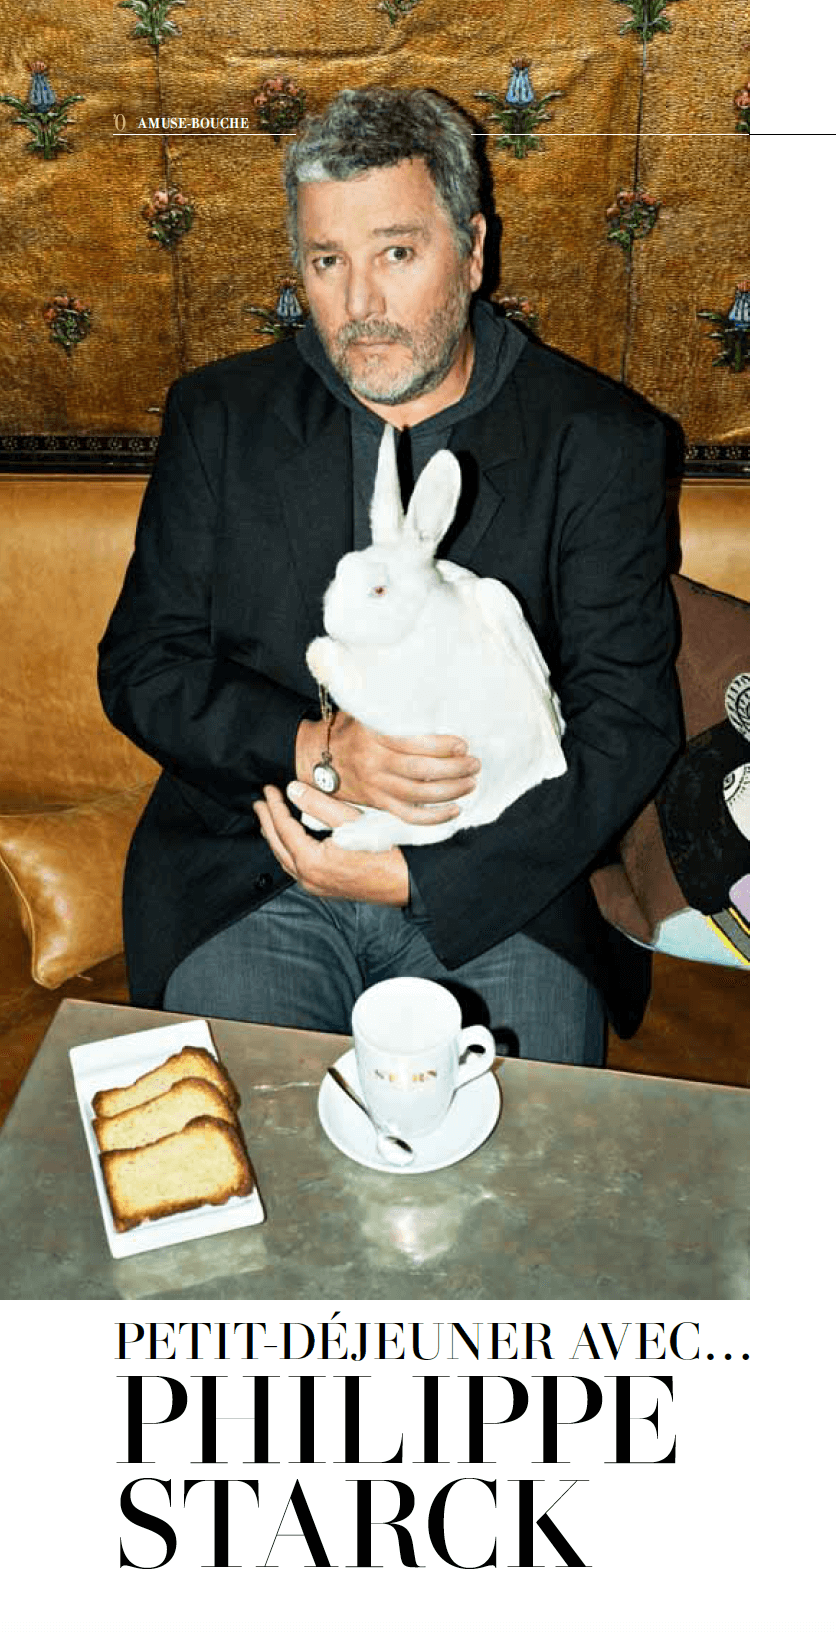 Breakfast with Philippe Starck